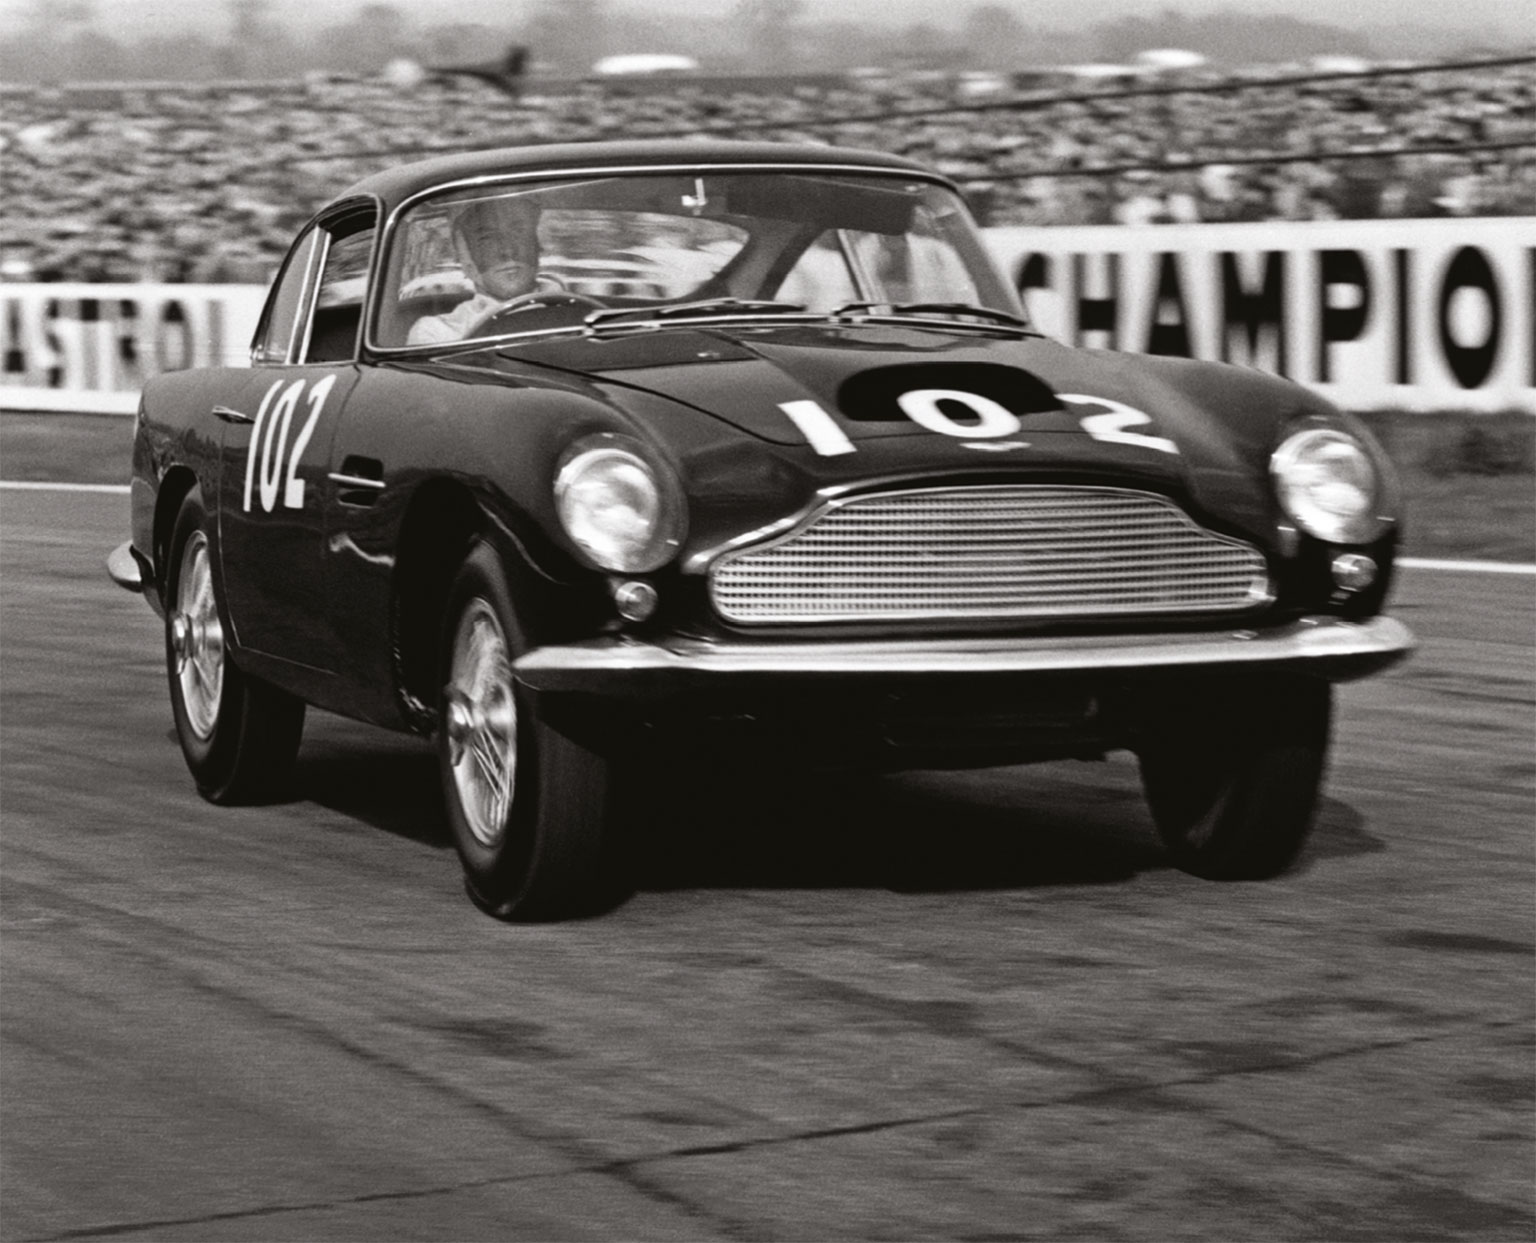 Stirling Moss at the wheel of a '60 DB4 GT at Goodwood